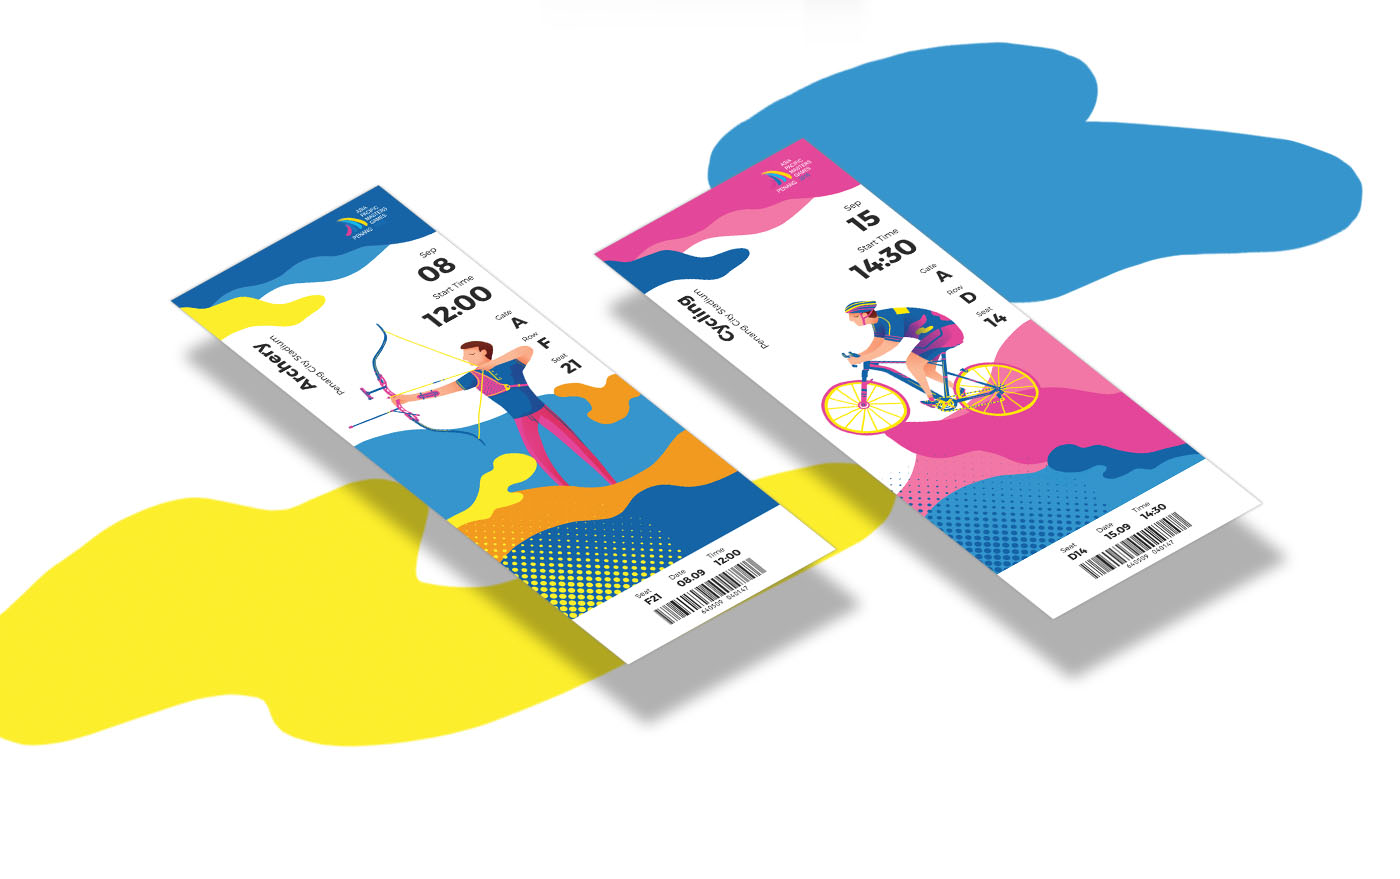 Illustration branding ticket sport game event